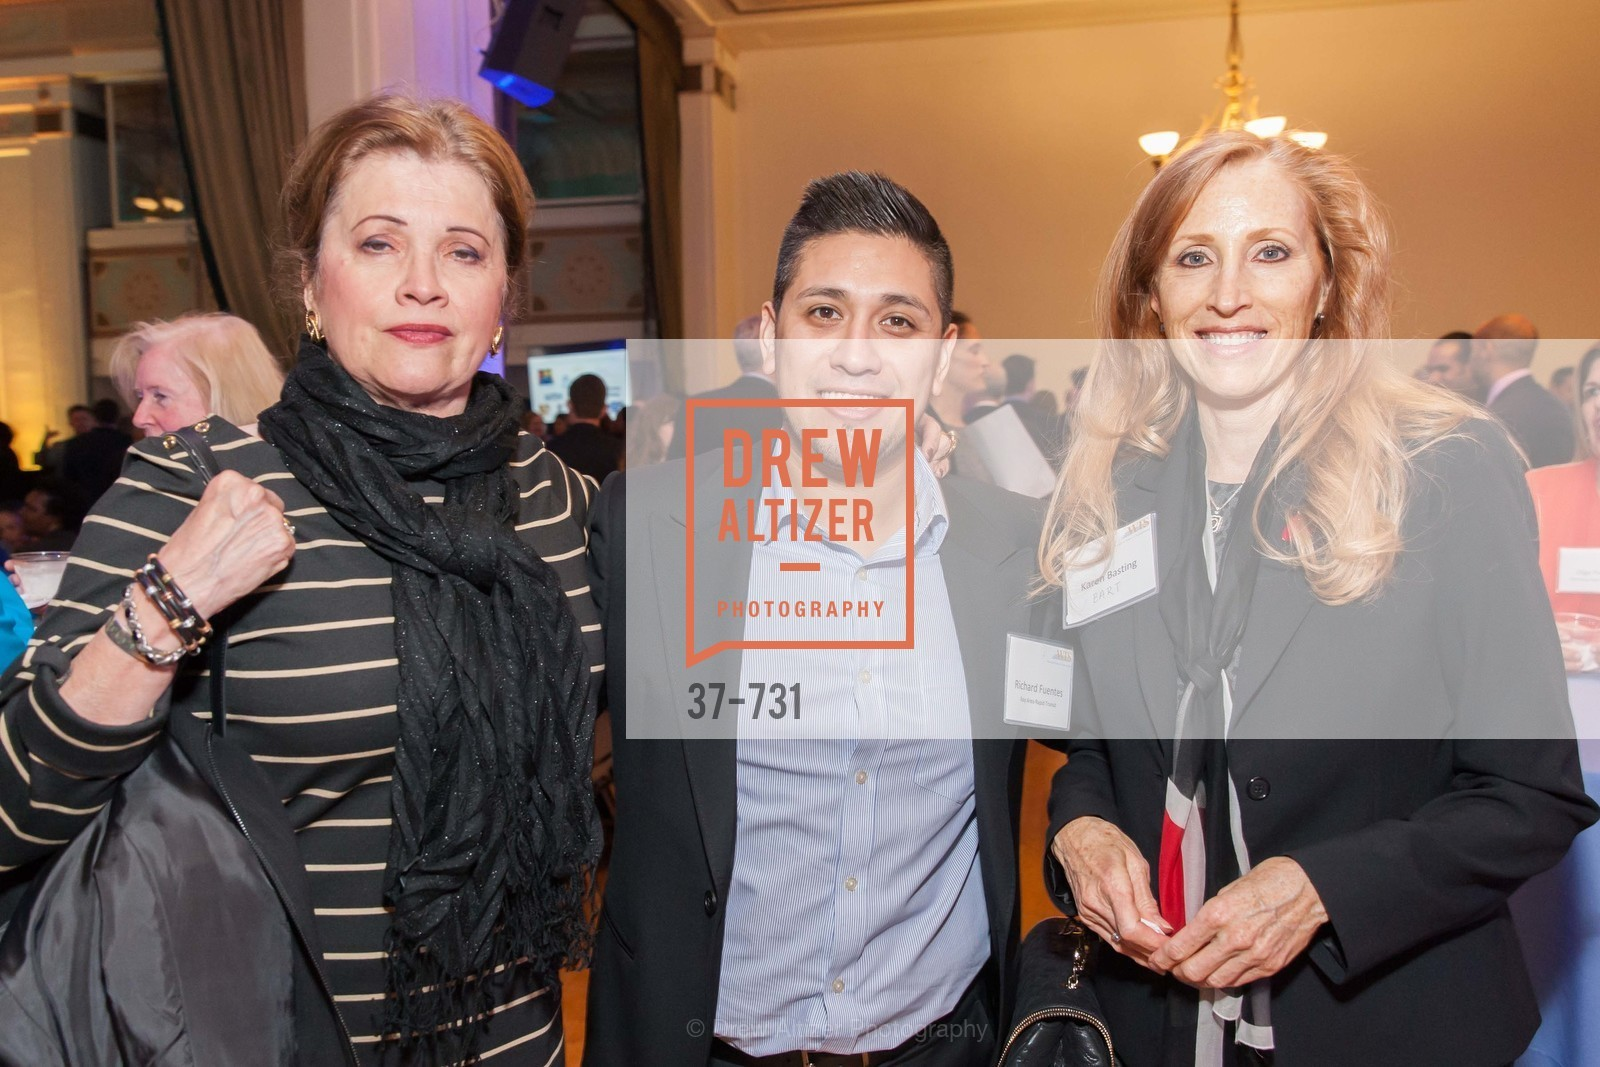 Richard Fuentes, Karen Basting, WOMEN'S TRANSPORTATION SEMINAR SF Bay Area Chapter Annual Scholarship Awards, US, May 15th, 2015,Drew Altizer, Drew Altizer Photography, full-service agency, private events, San Francisco photographer, photographer california